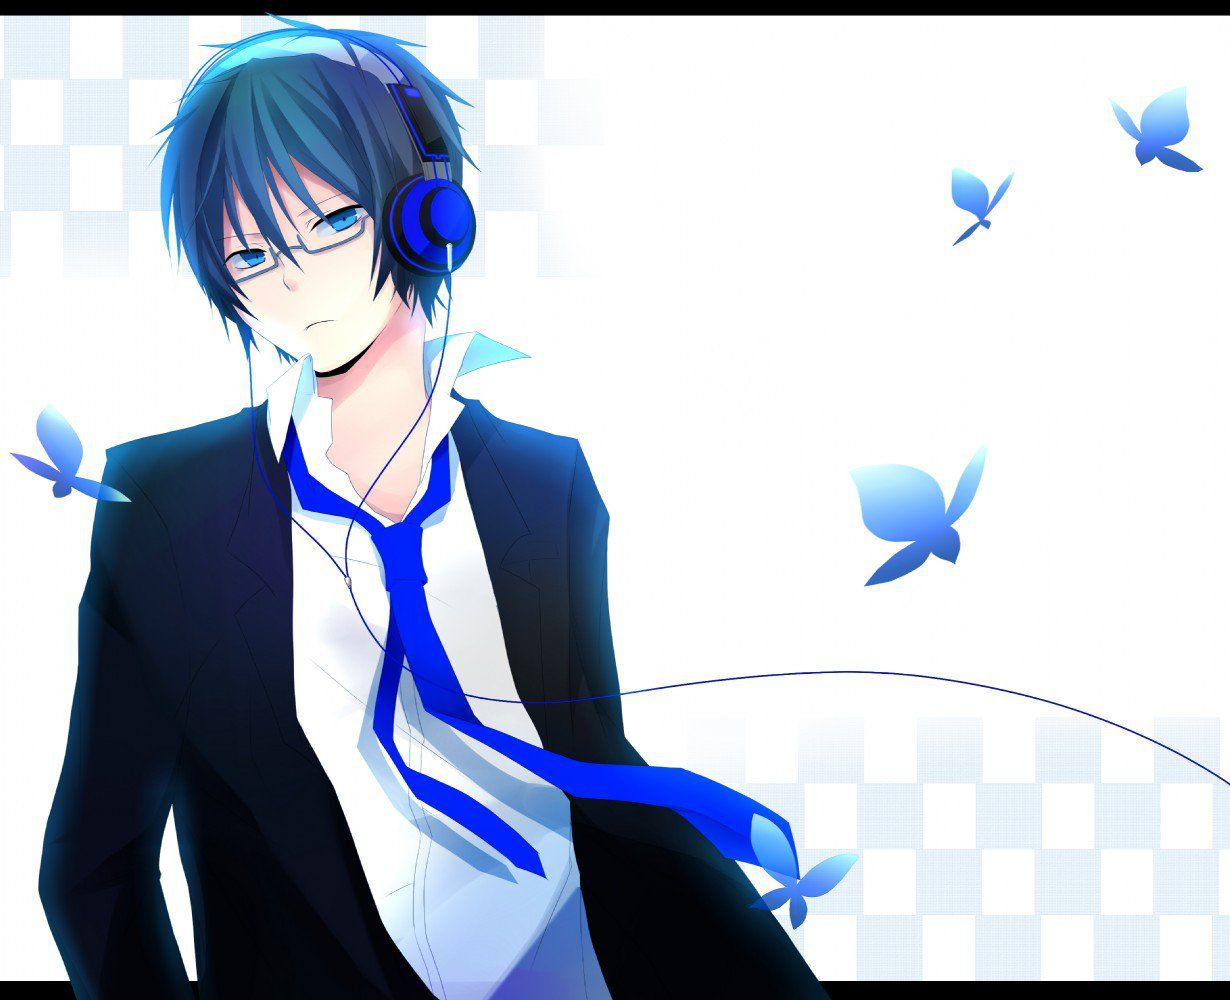 Pin By Krista Burke On Anime 3 Anime Boy With Headphones Cool